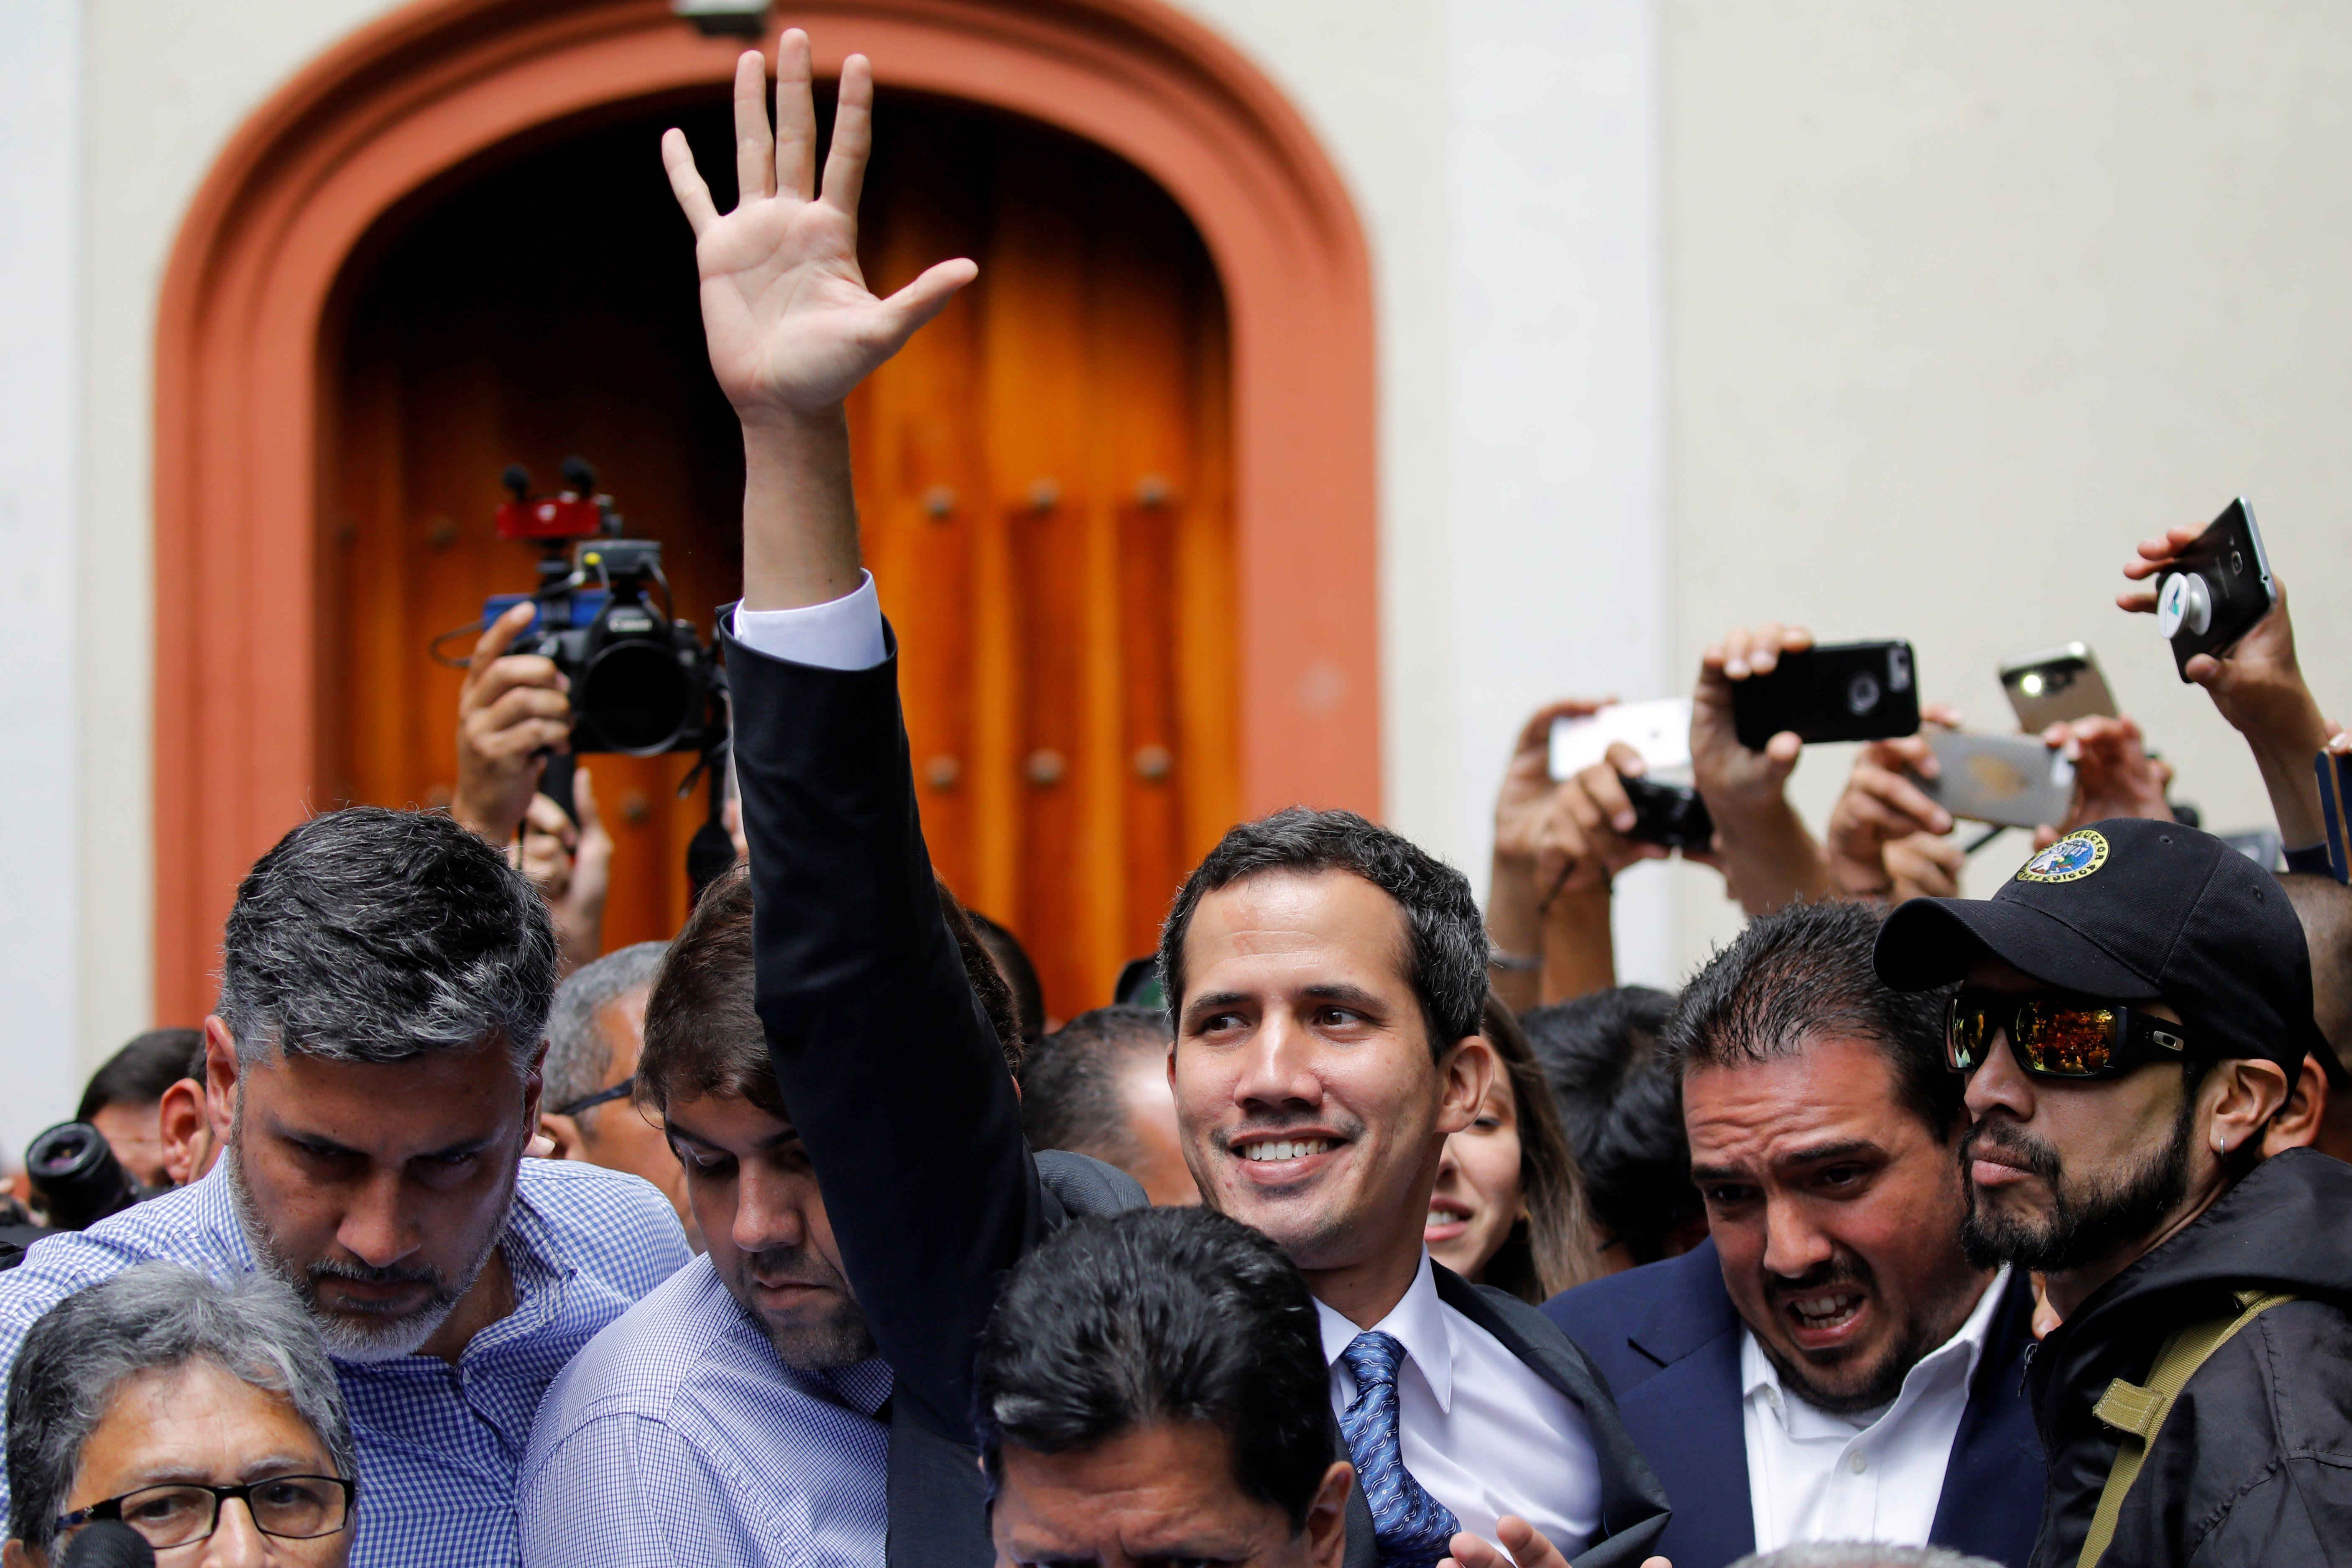 Venezuelan leader Juan Guaido claims presidency, recognised by US